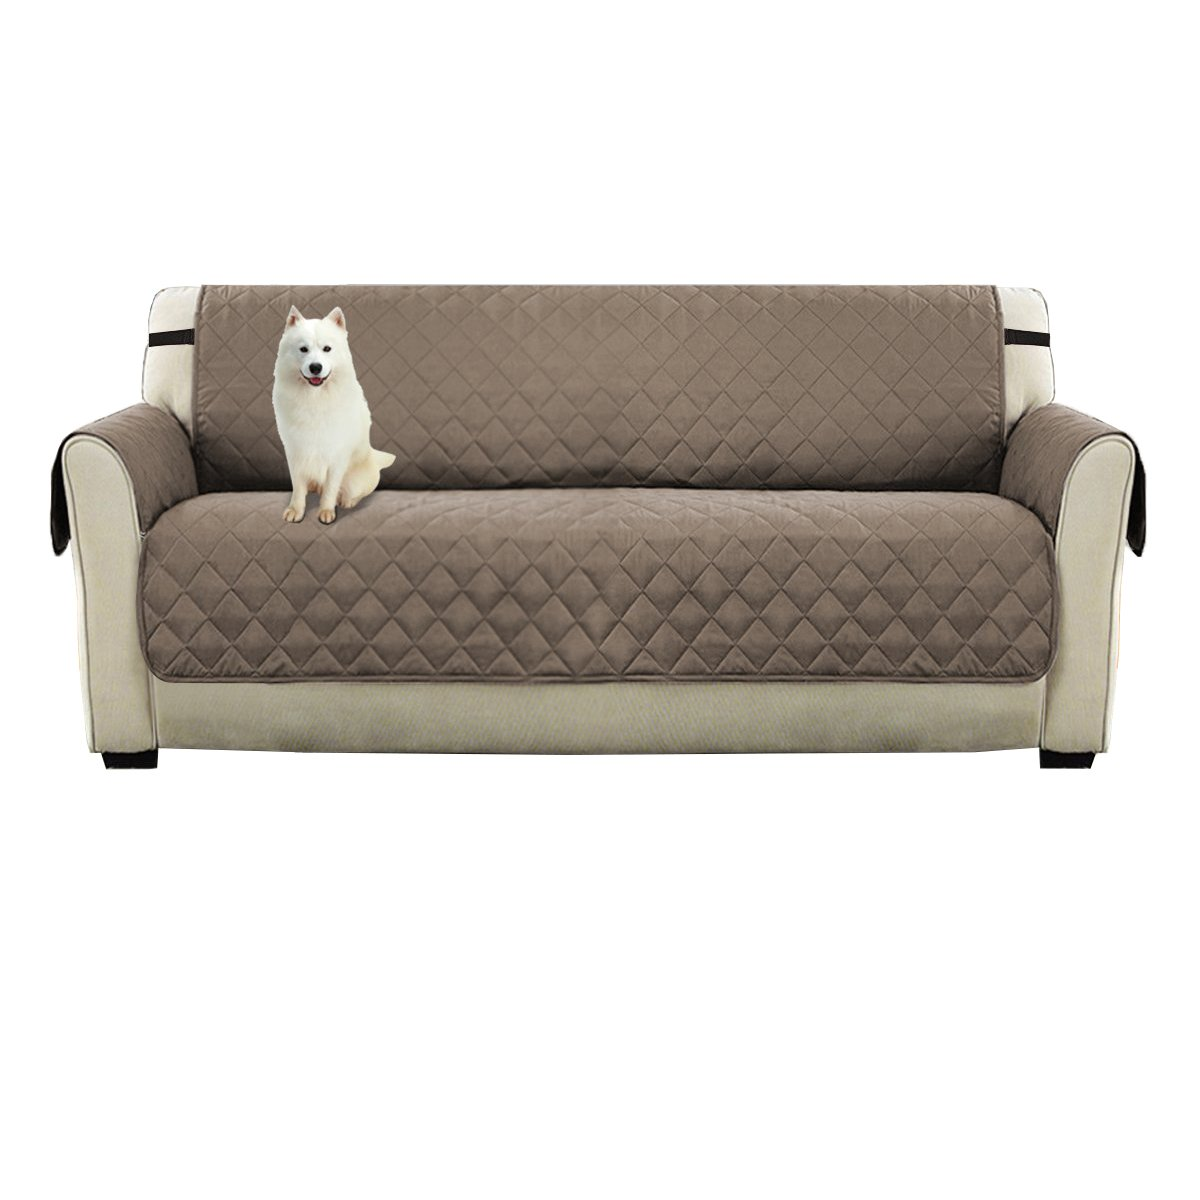 WATTA Anti-Slip Chair 1 Seater Sofa Reversible Slipcovers Beige Fabric for Pet Dog Couch Covers Protectors